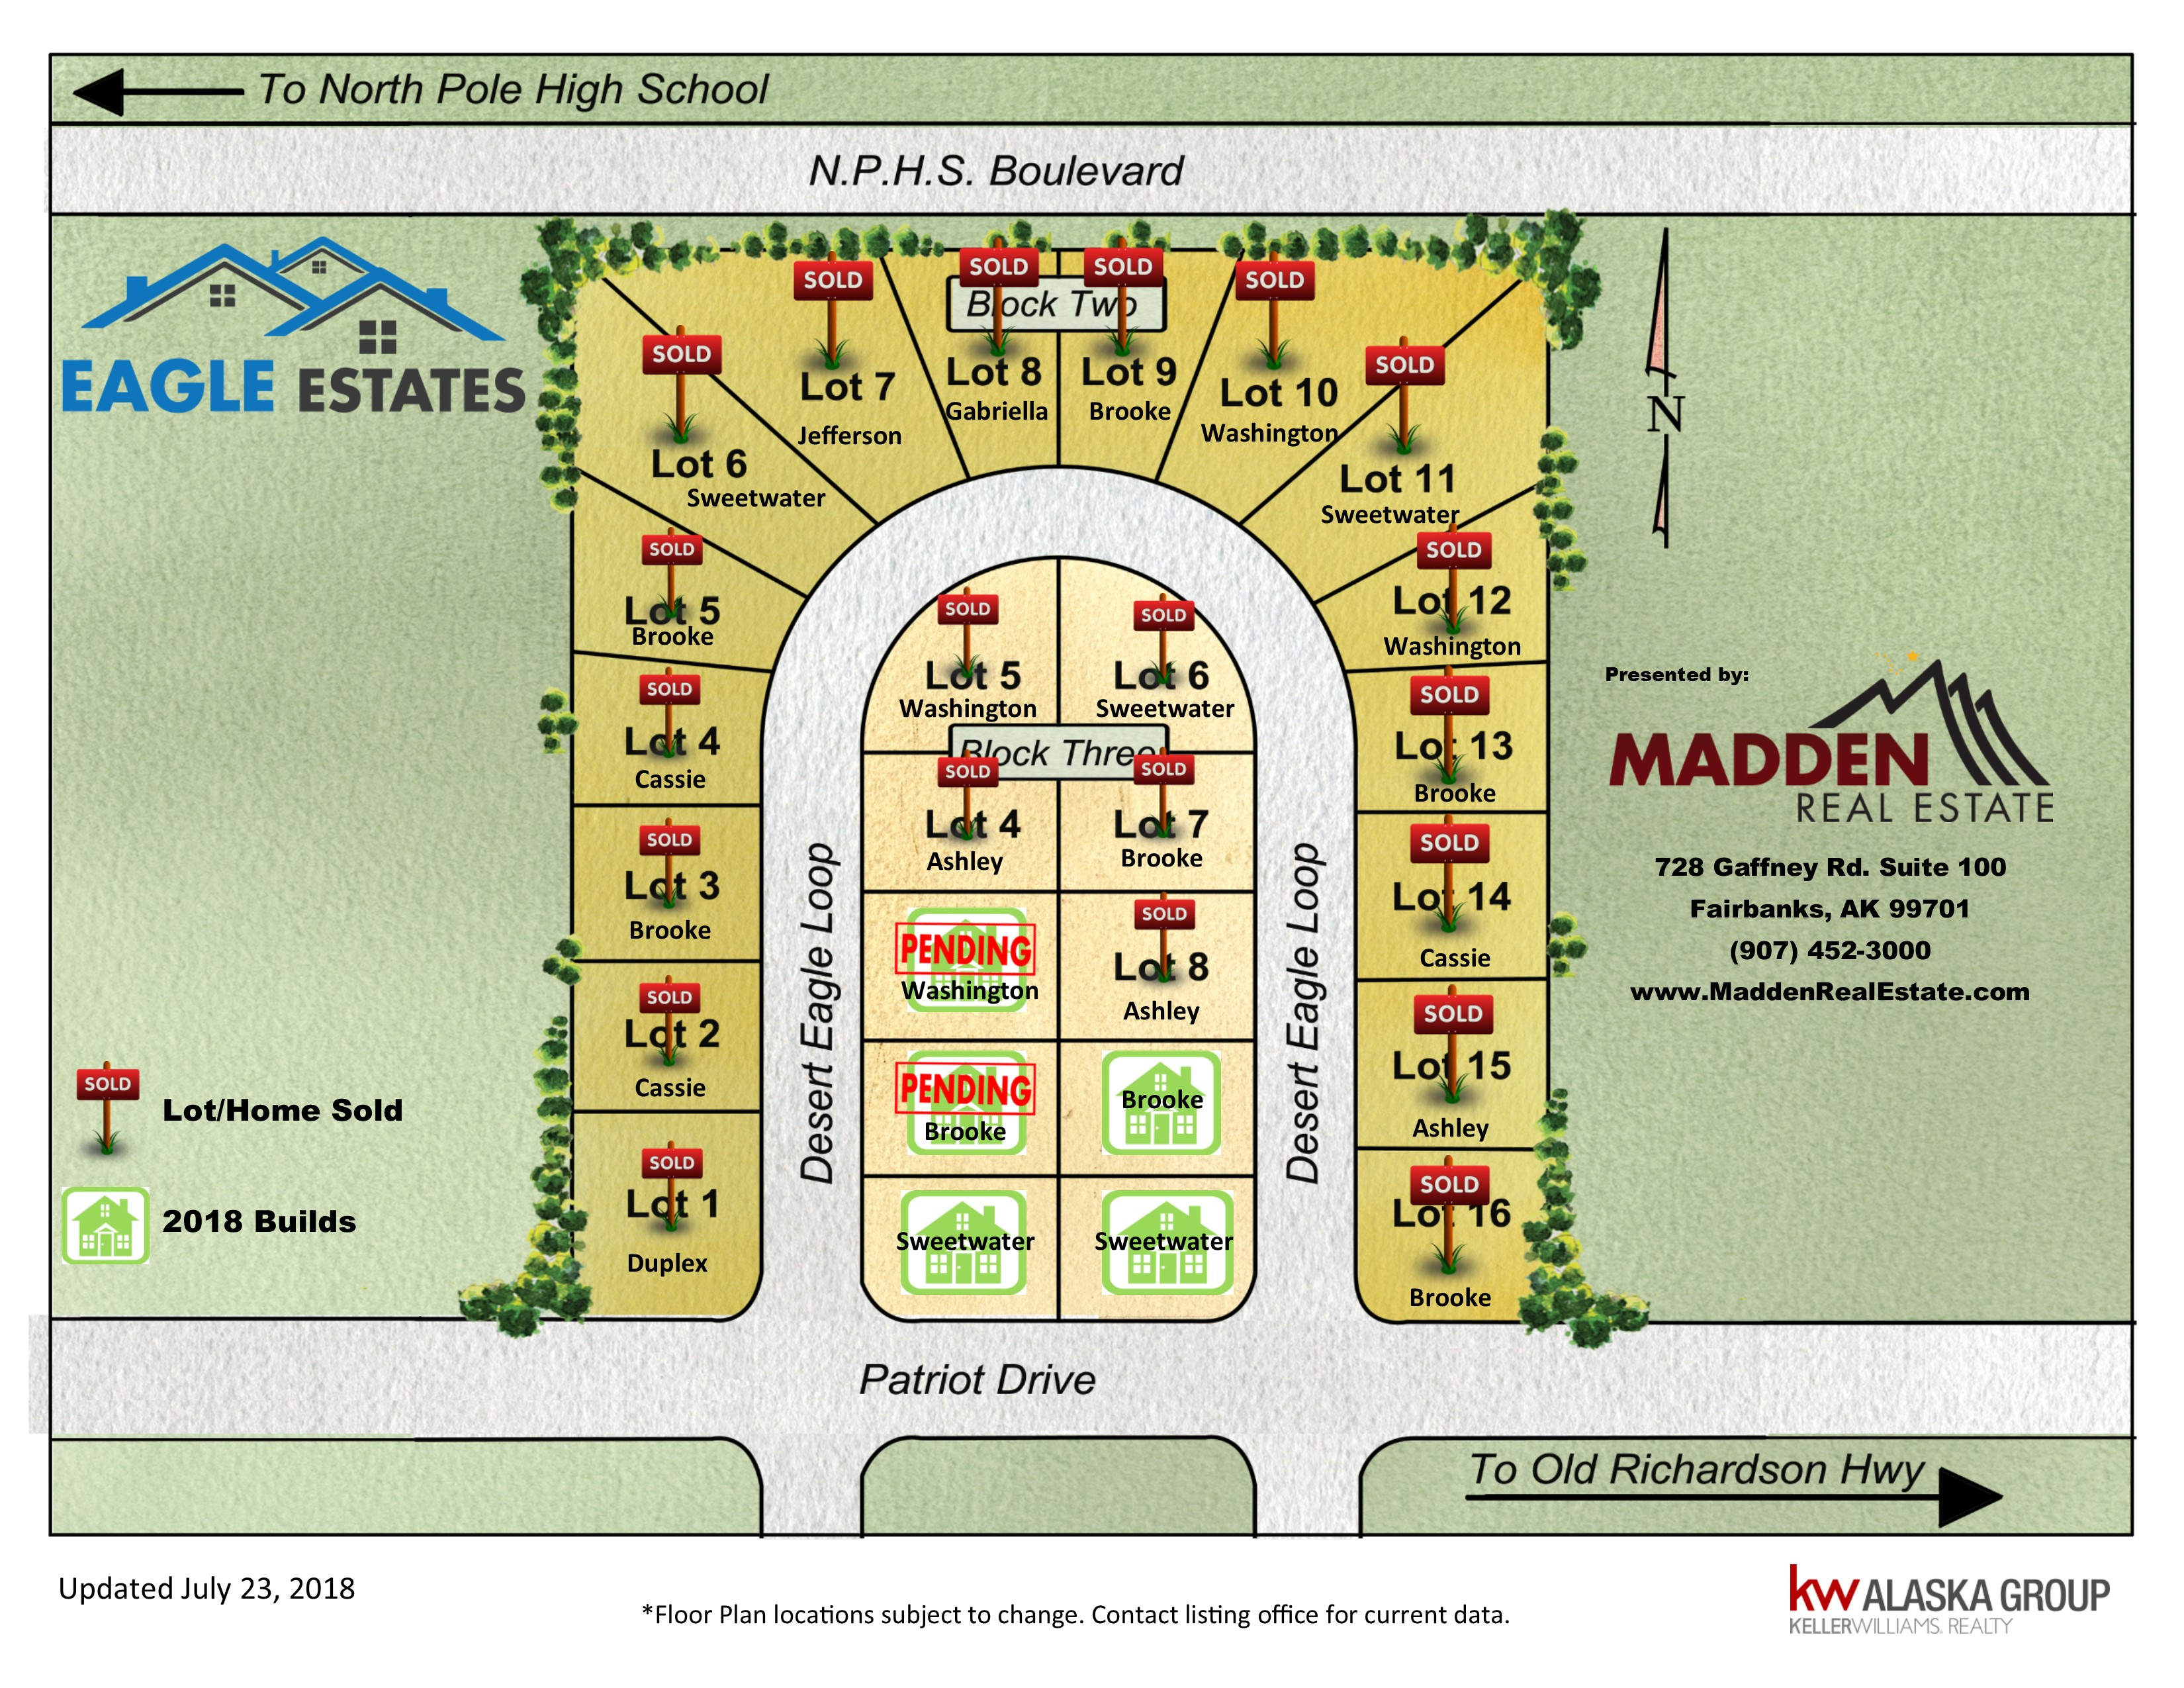 Current Availability of Lots in Eagle Estate Subdivision